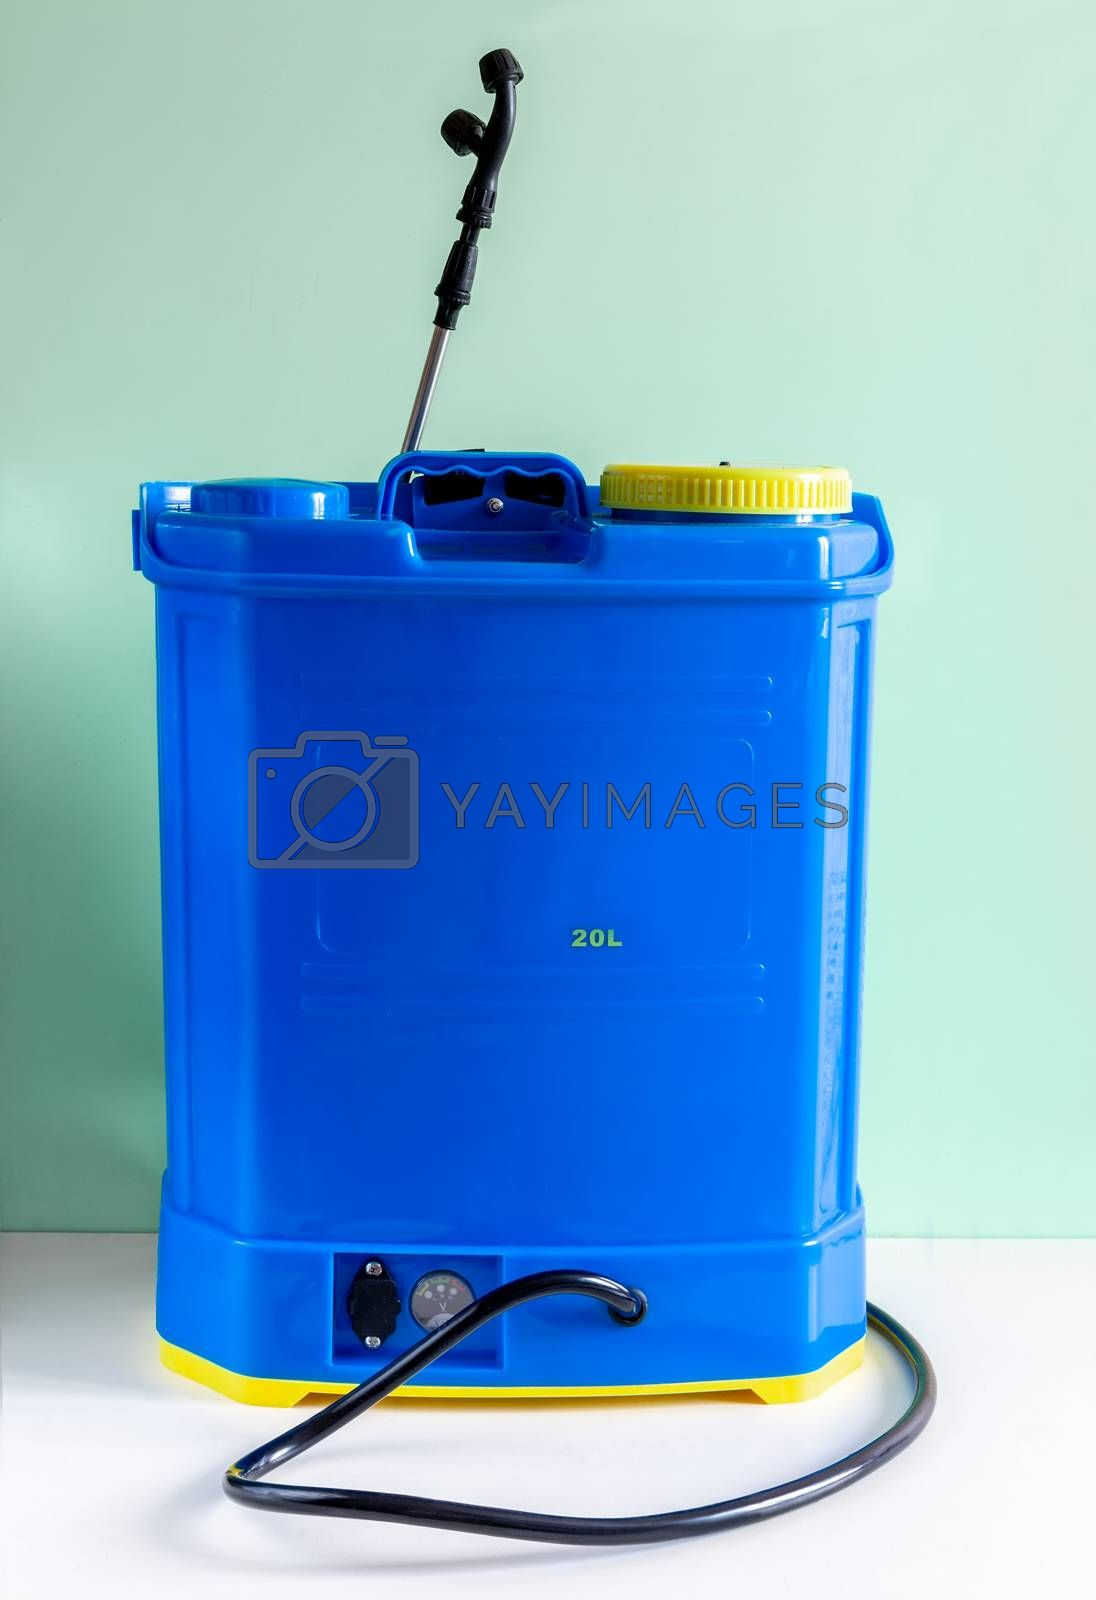 Backpack battery sprayer for protecting trees and plants from diseases and pests. The pressure is increased using a battery-powered pump. Facade. Copy space